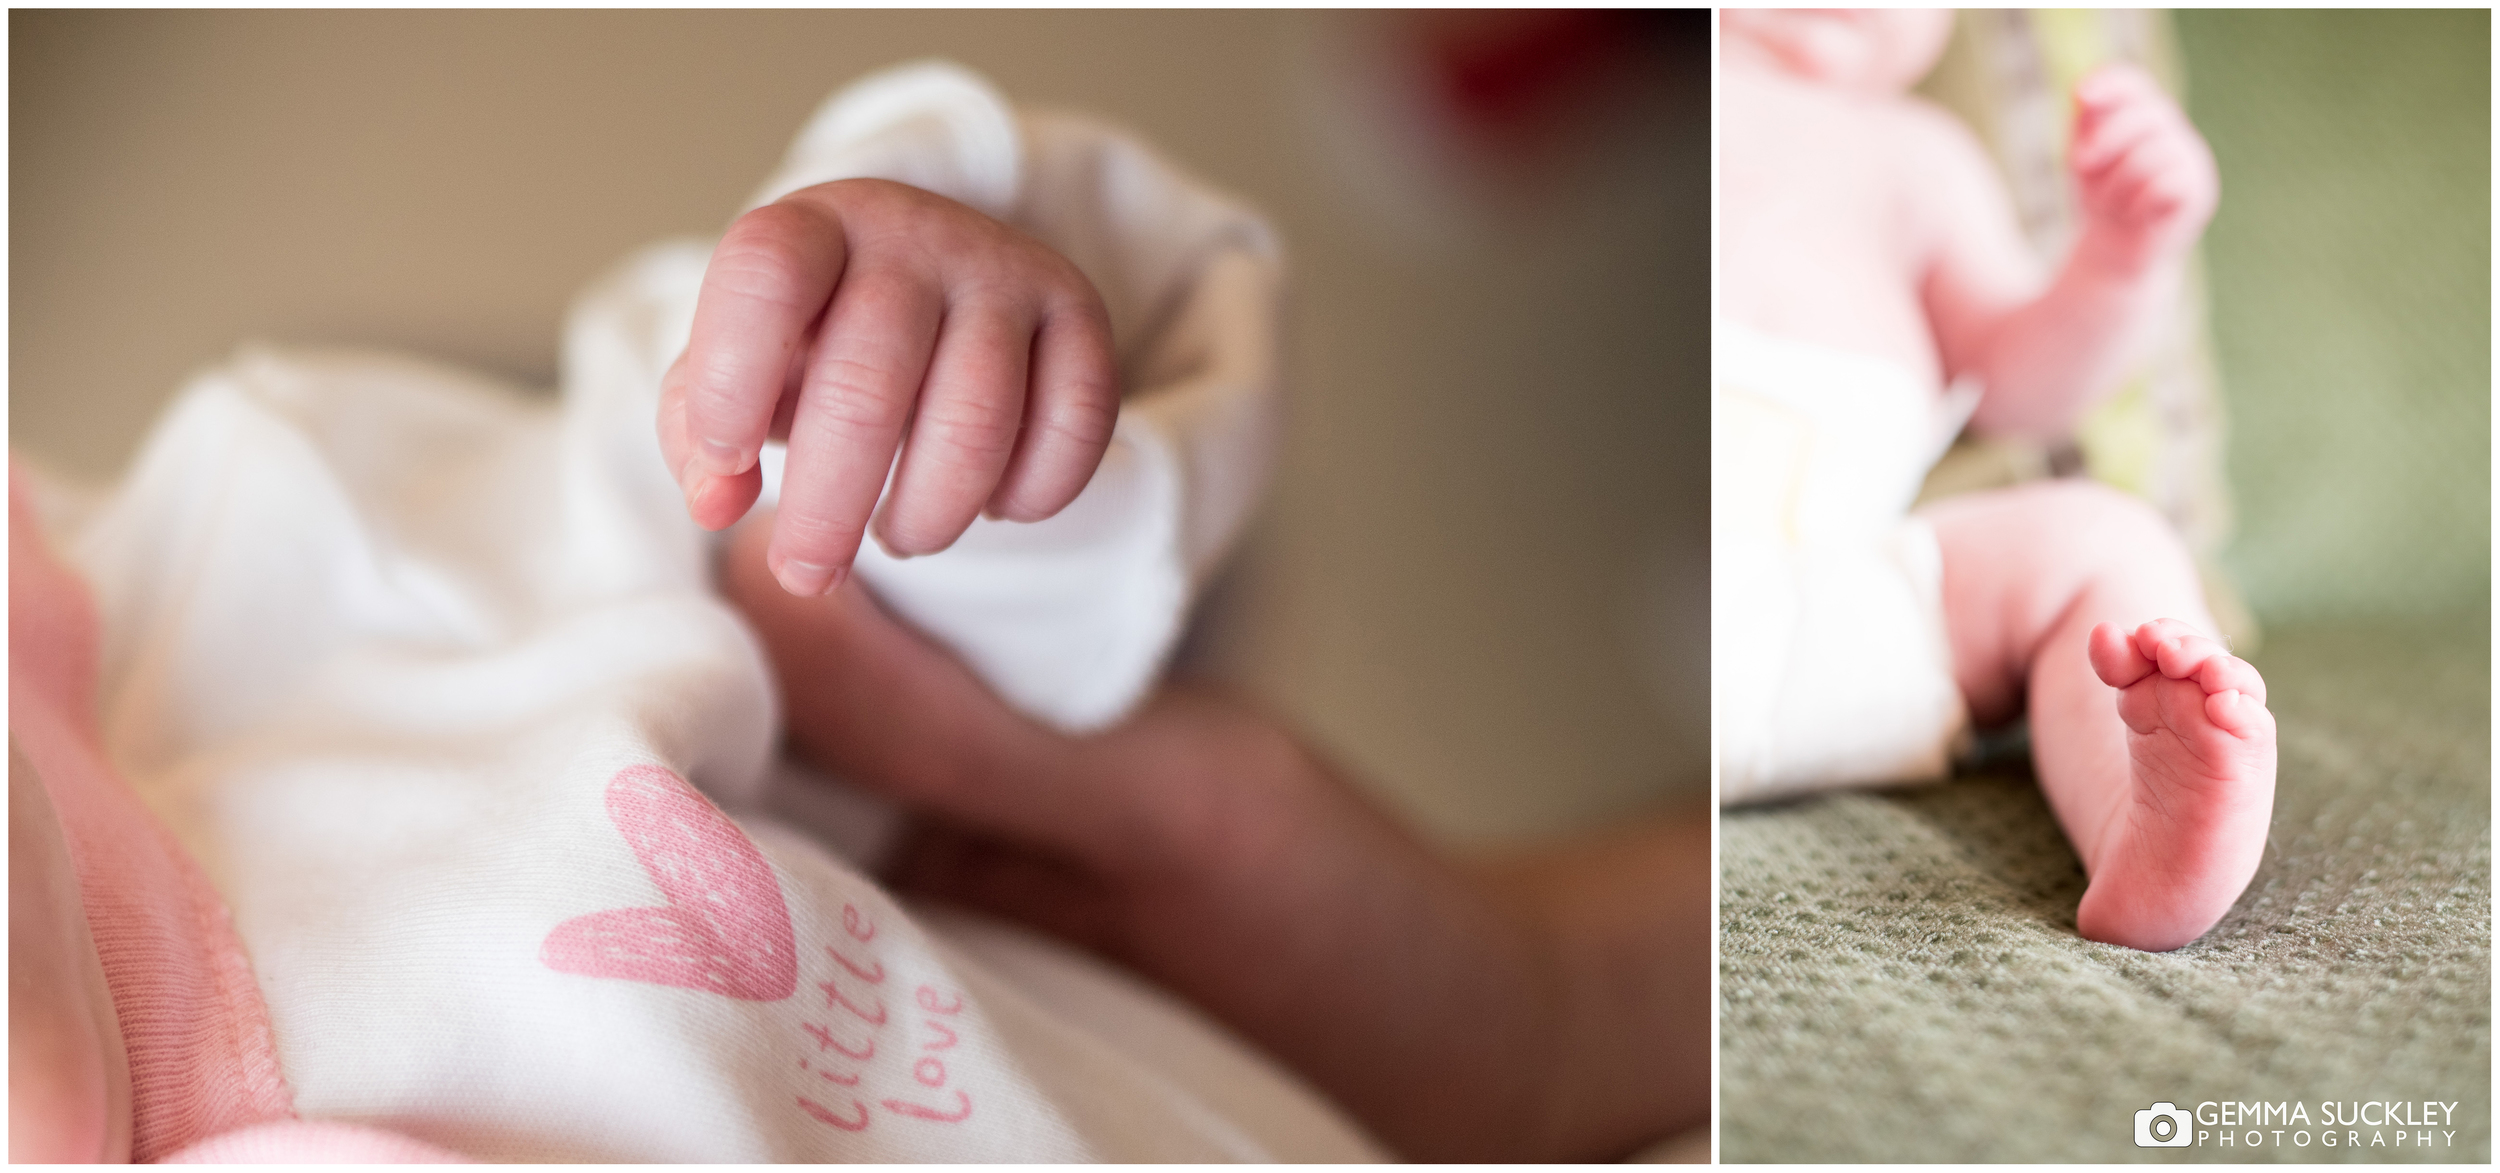 baby-feet-and-hands.jpg